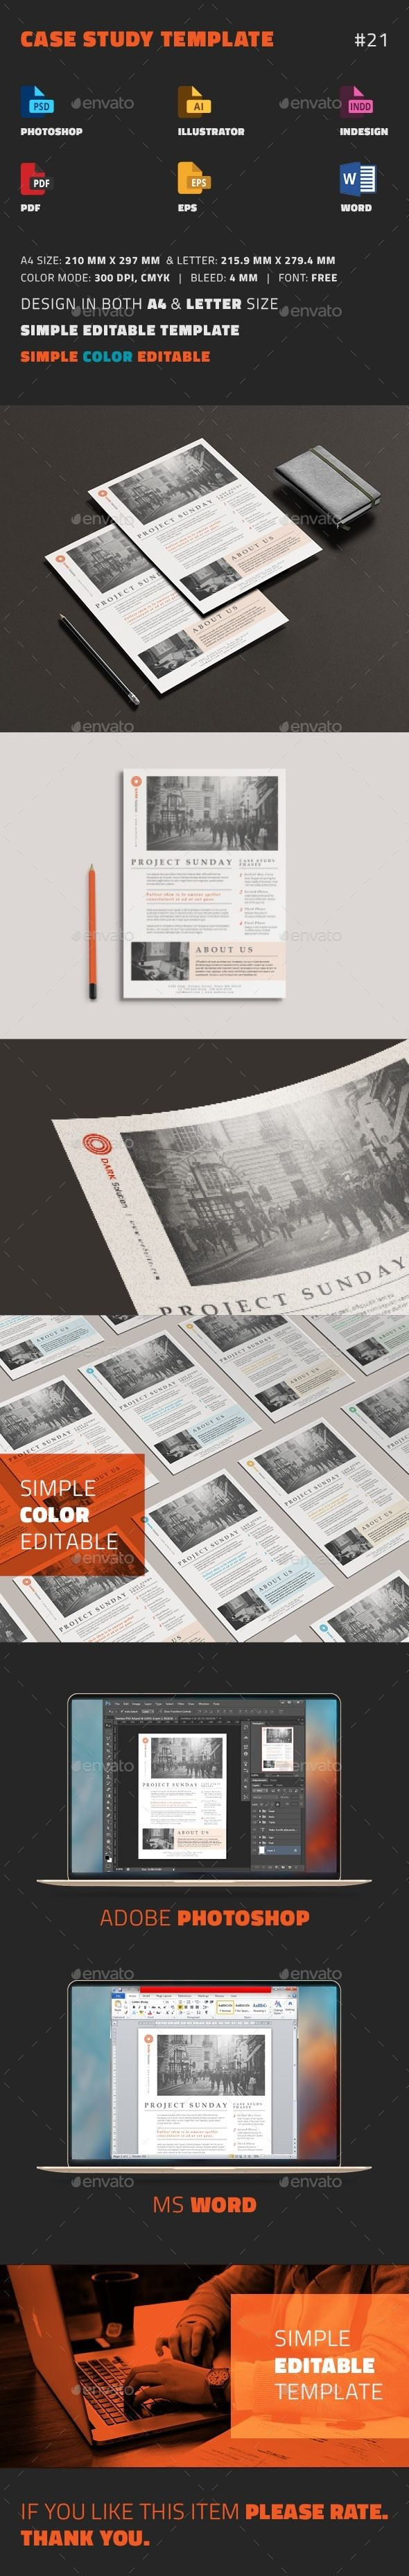 Case Study Template The document you need to present your case studies in a clean and professional way. Drop in your own text and images, send it to the printer or attach it to an email as pdf file.